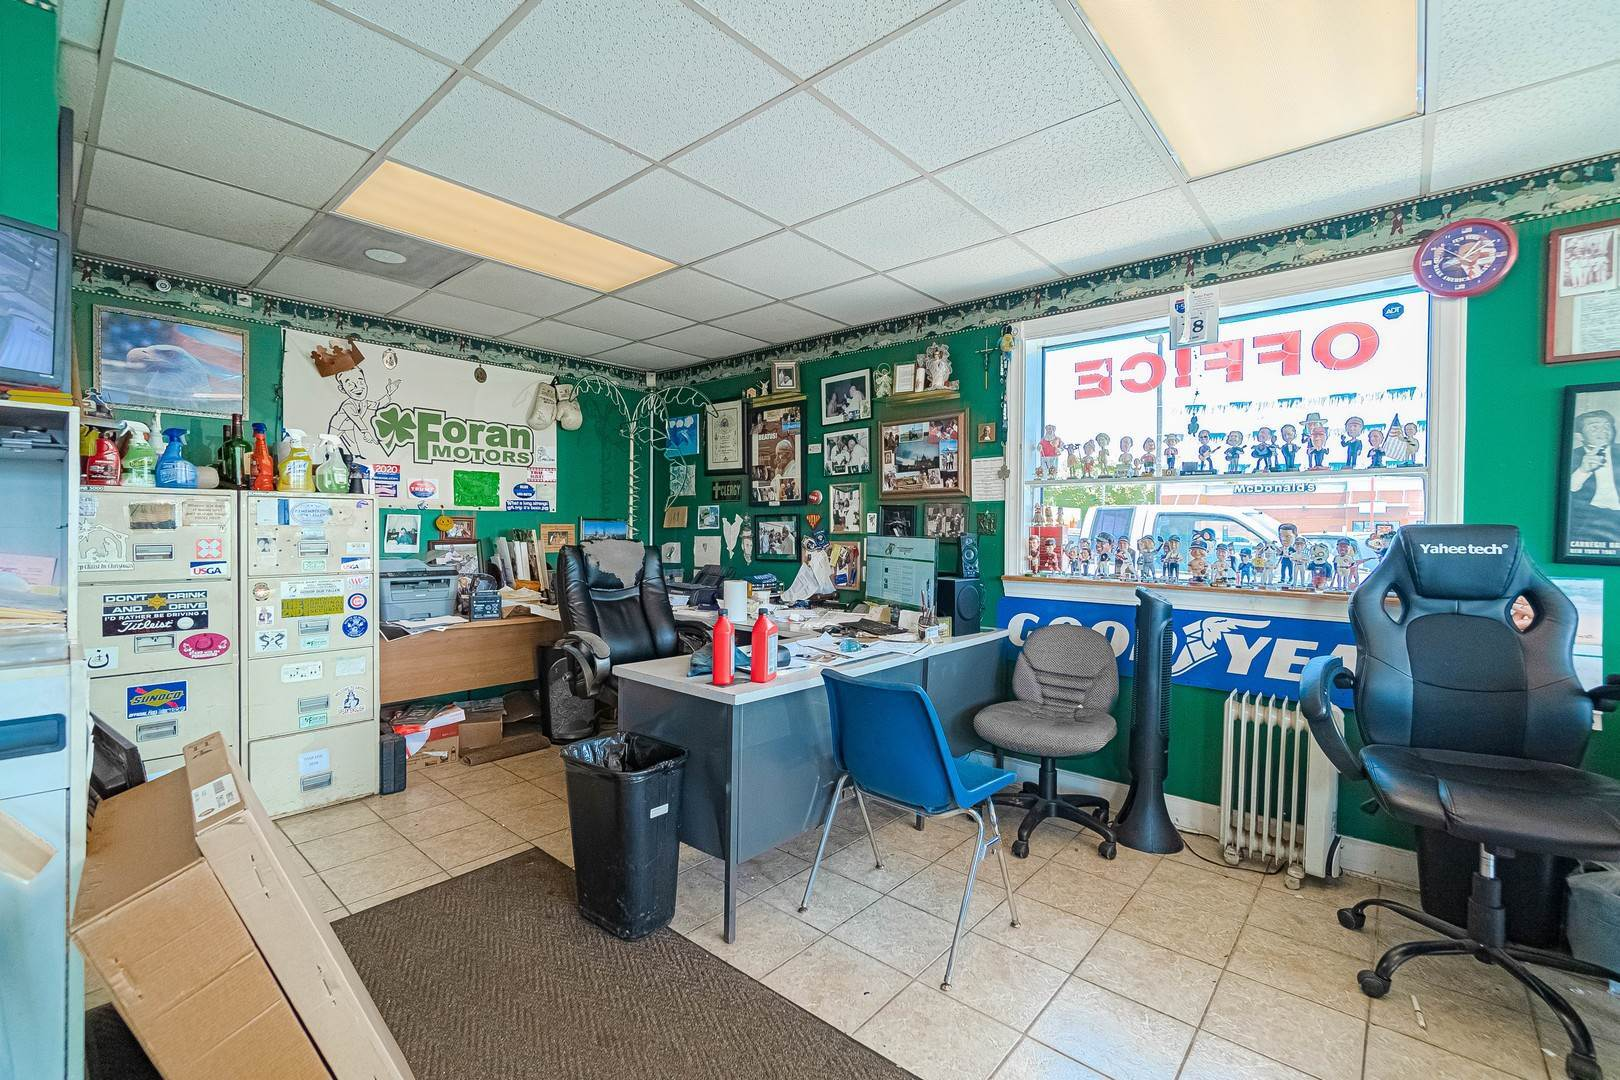 Business Opportunity for Sale at 7948 W 79th Street Bridgeview, Illinois 60455 United States